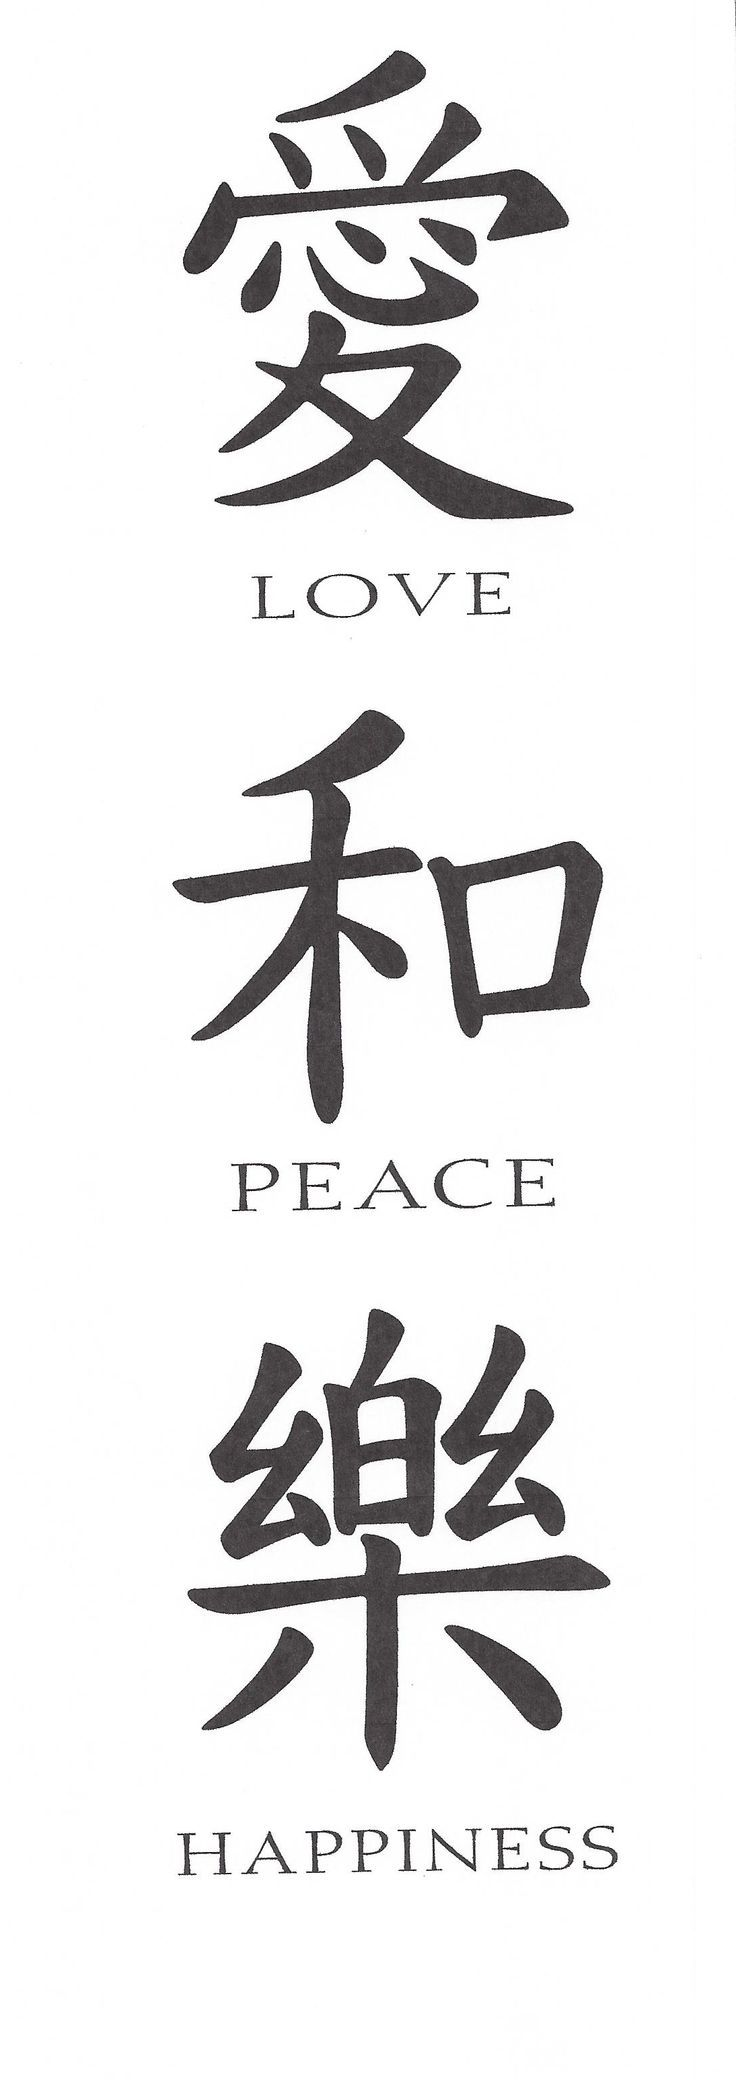 Love peace and happiness in japanese writing google search love peace and happiness in japanese writing google search biocorpaavc Gallery